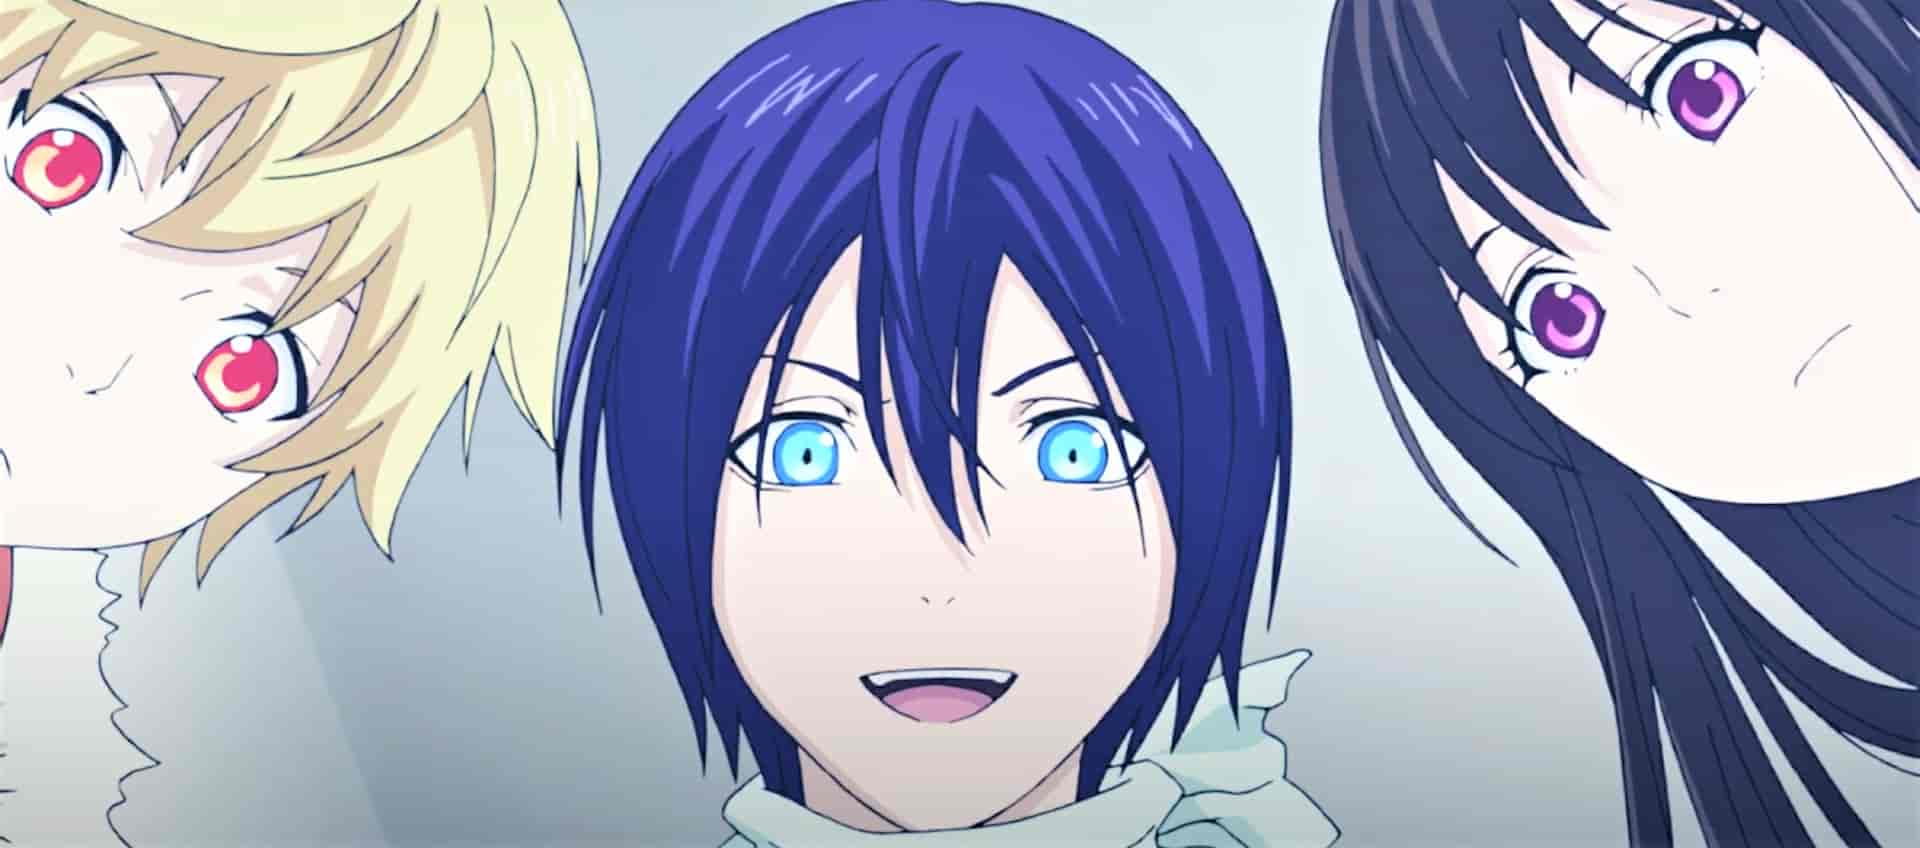 Noragami, Noragami Season 3 Release Date And What Is Storyline?